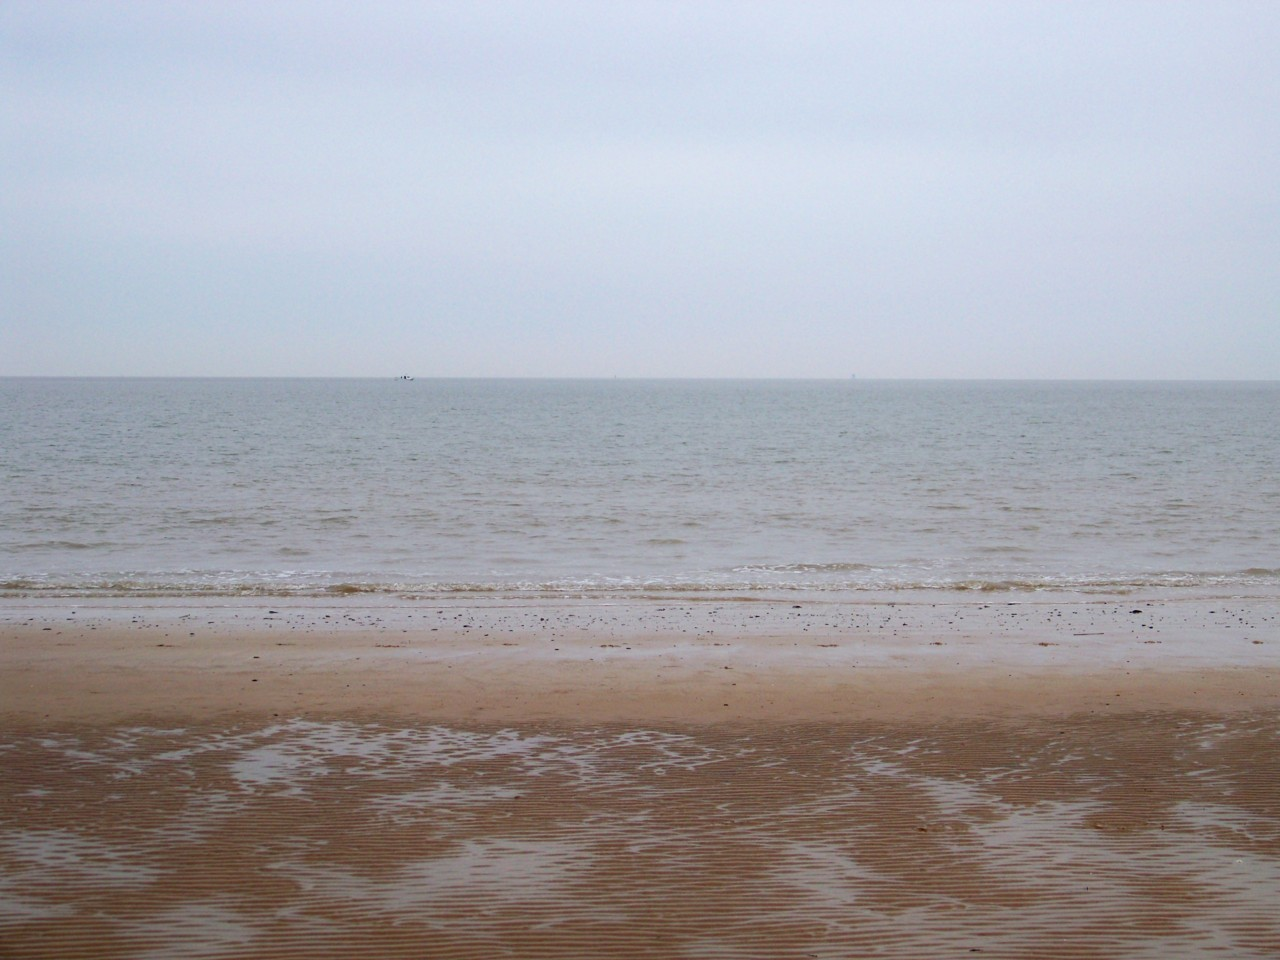 14th March 2012. Walking on the beach this morning; nothing much there except the  exhilaration of space.